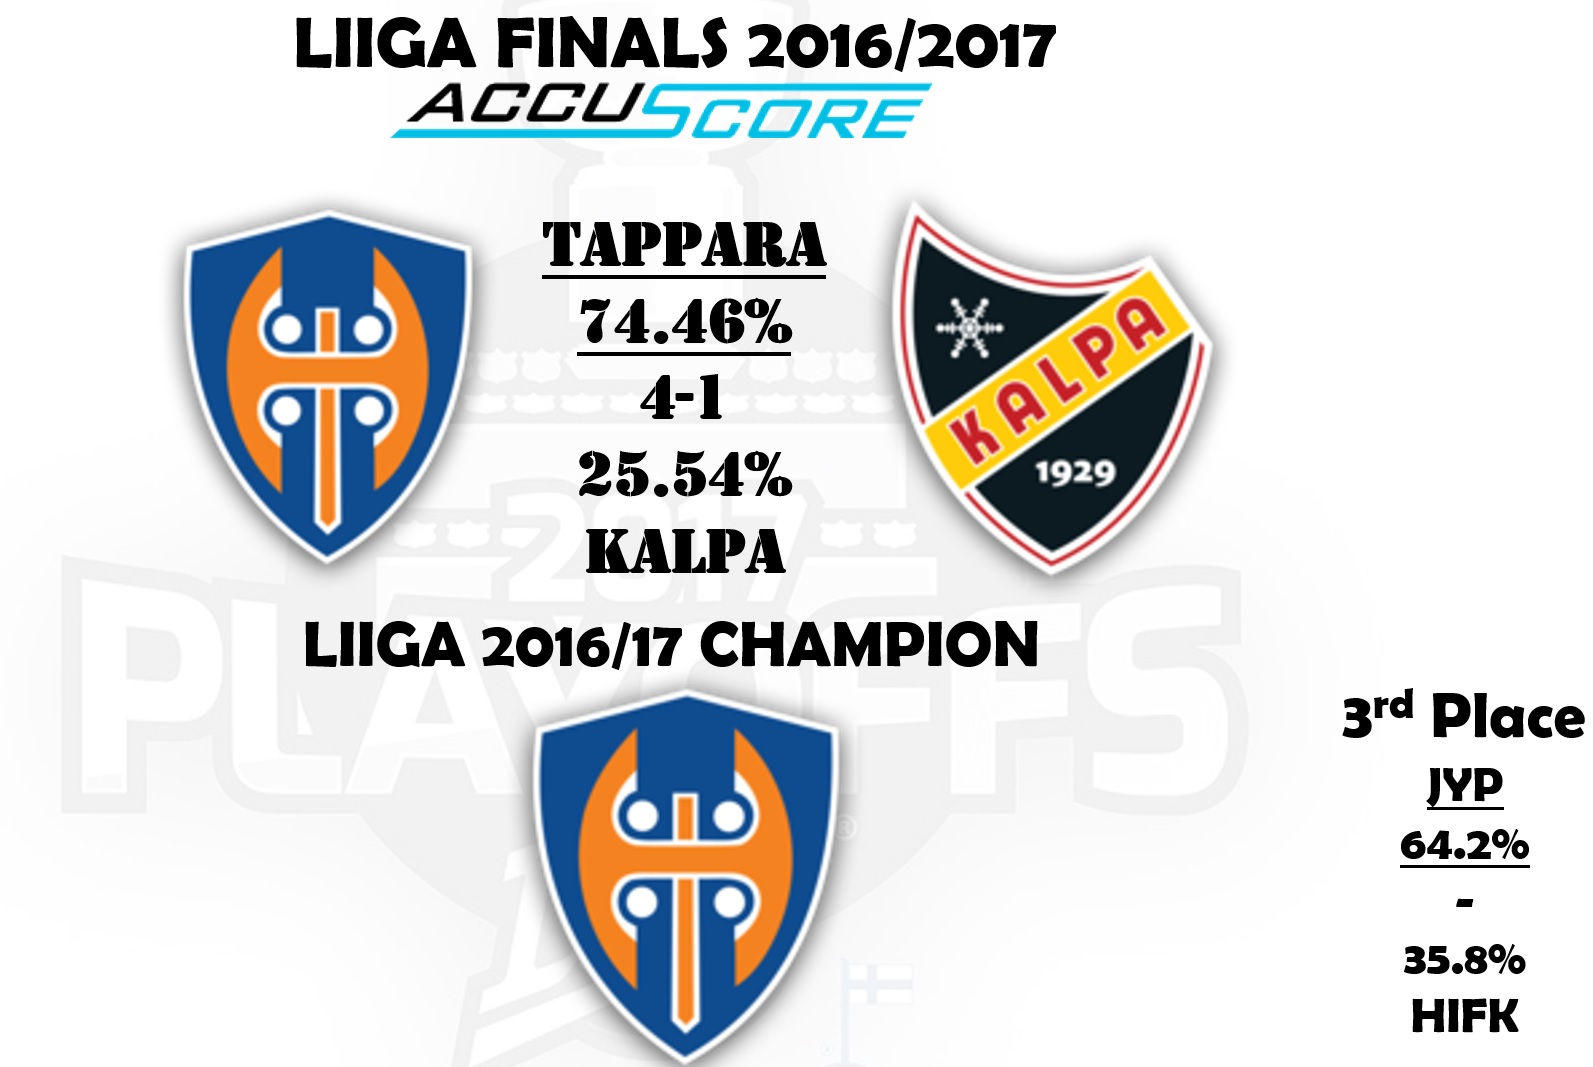 Accuscore Finnish Liiga Finals 2016/17 prediction